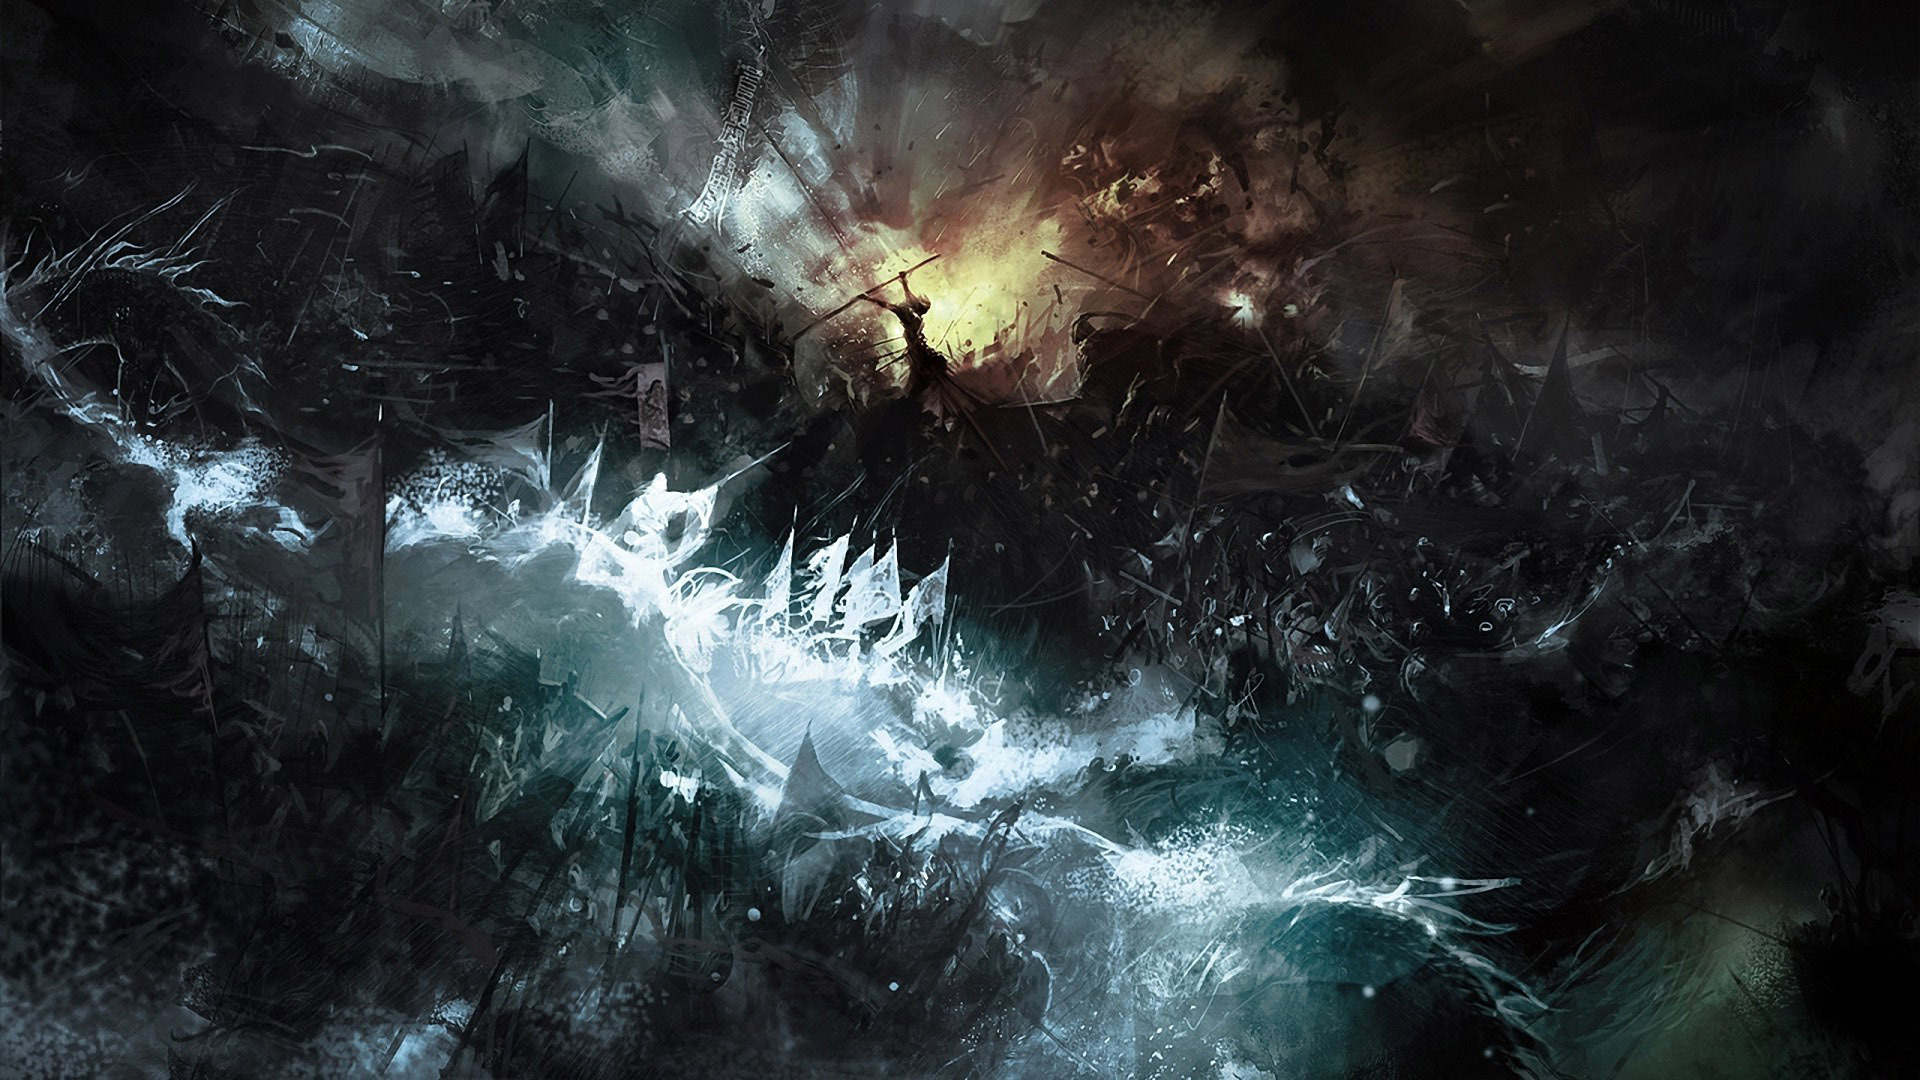 Fantasy disaster hd background